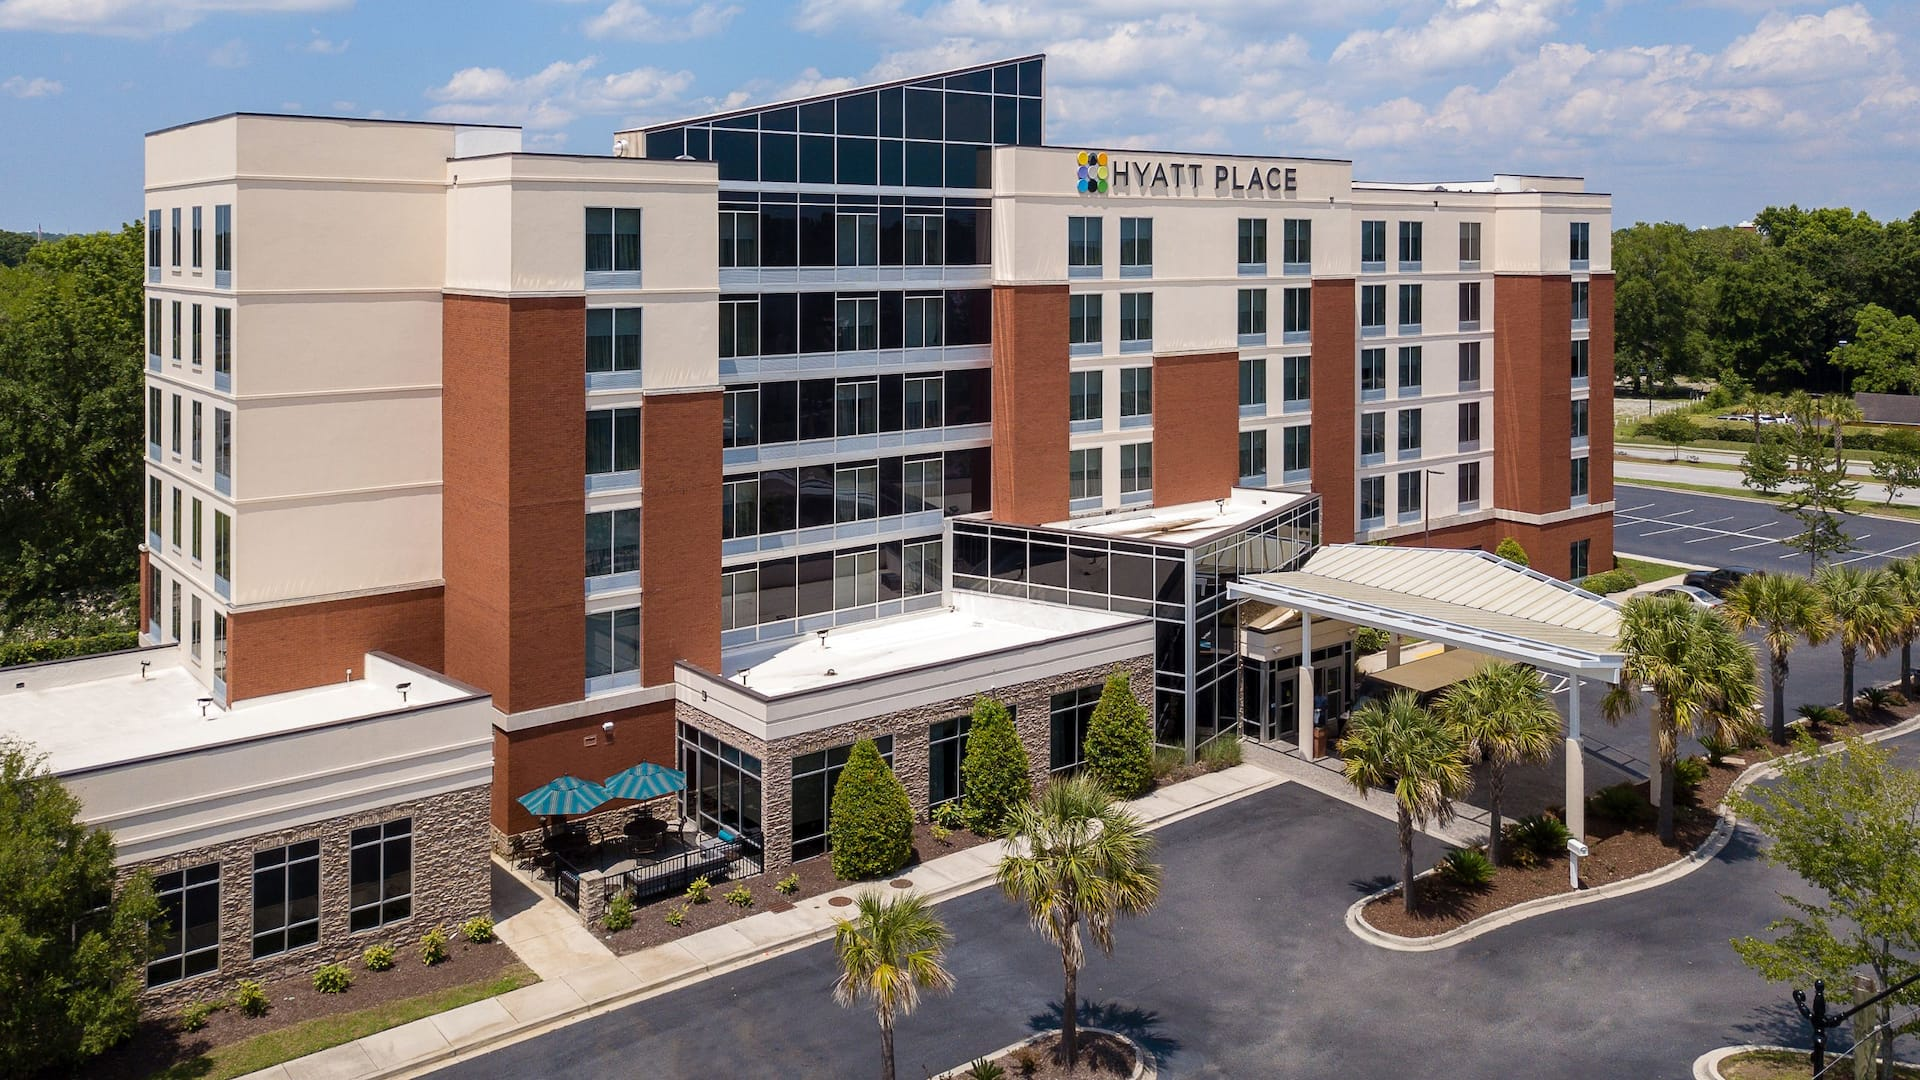 Hyatt Place Charleston Convention/Airport Hotel exterior